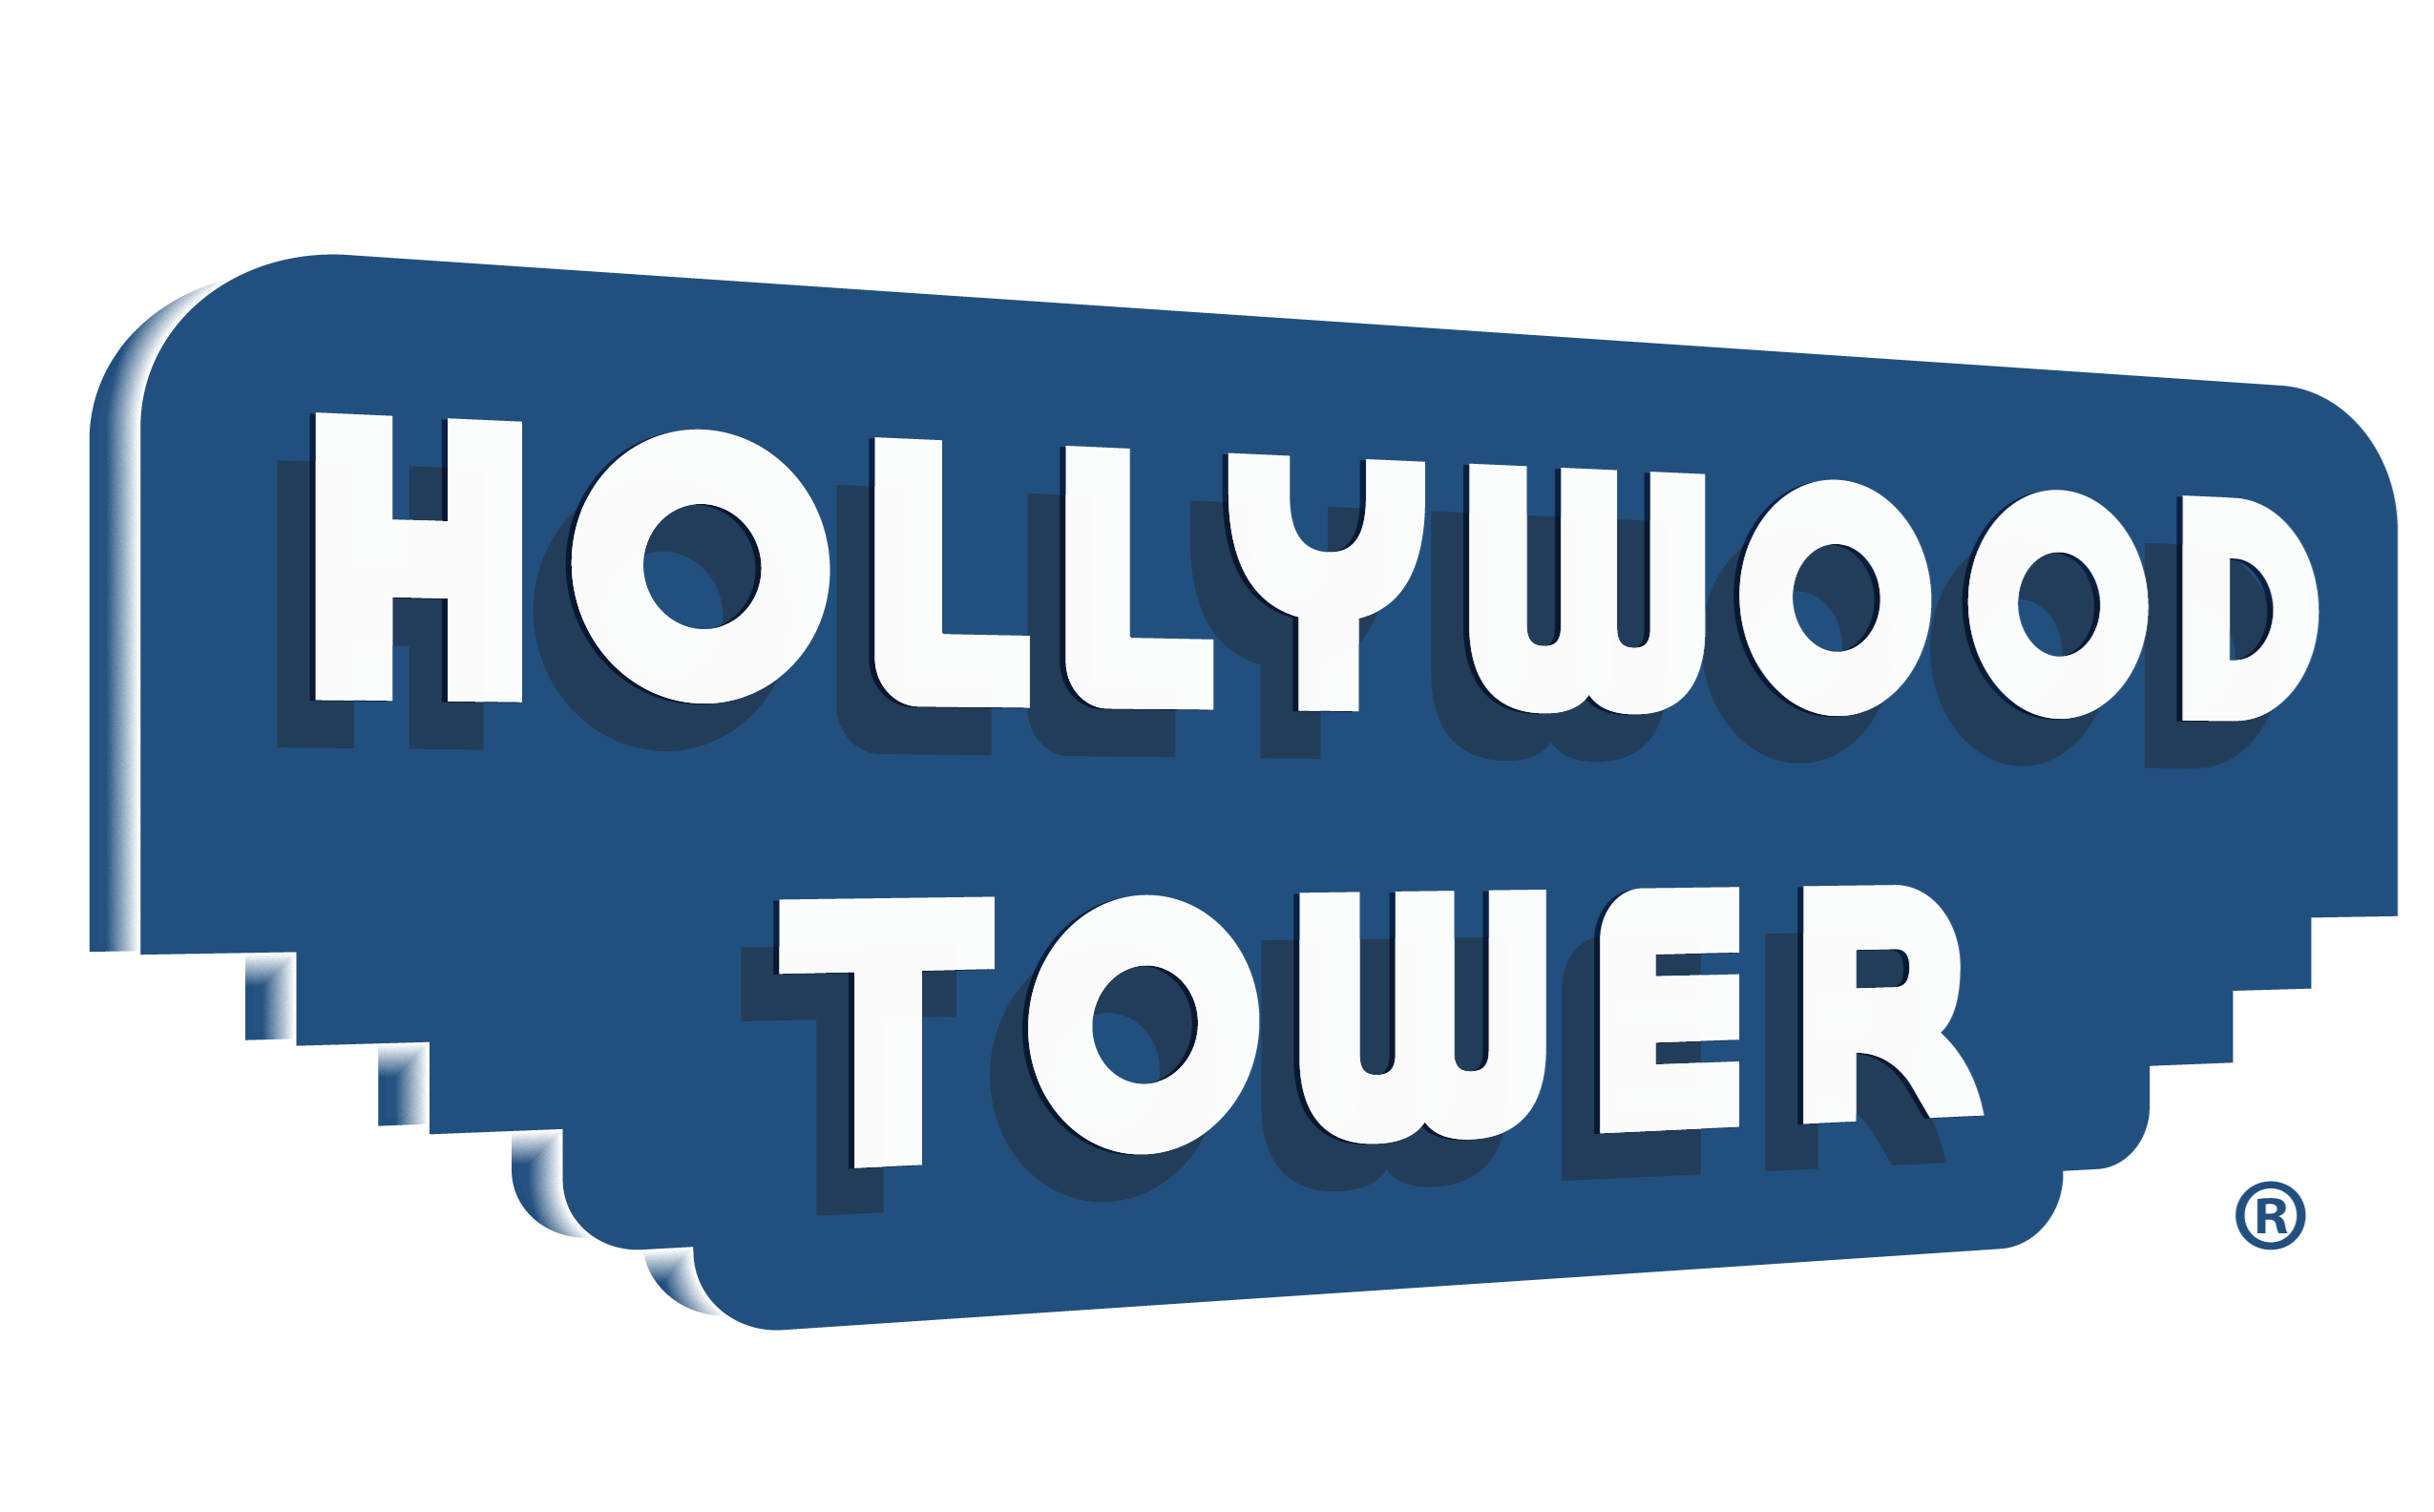 Community logo at Hollywood Tower in Los Angeles, CA 90028